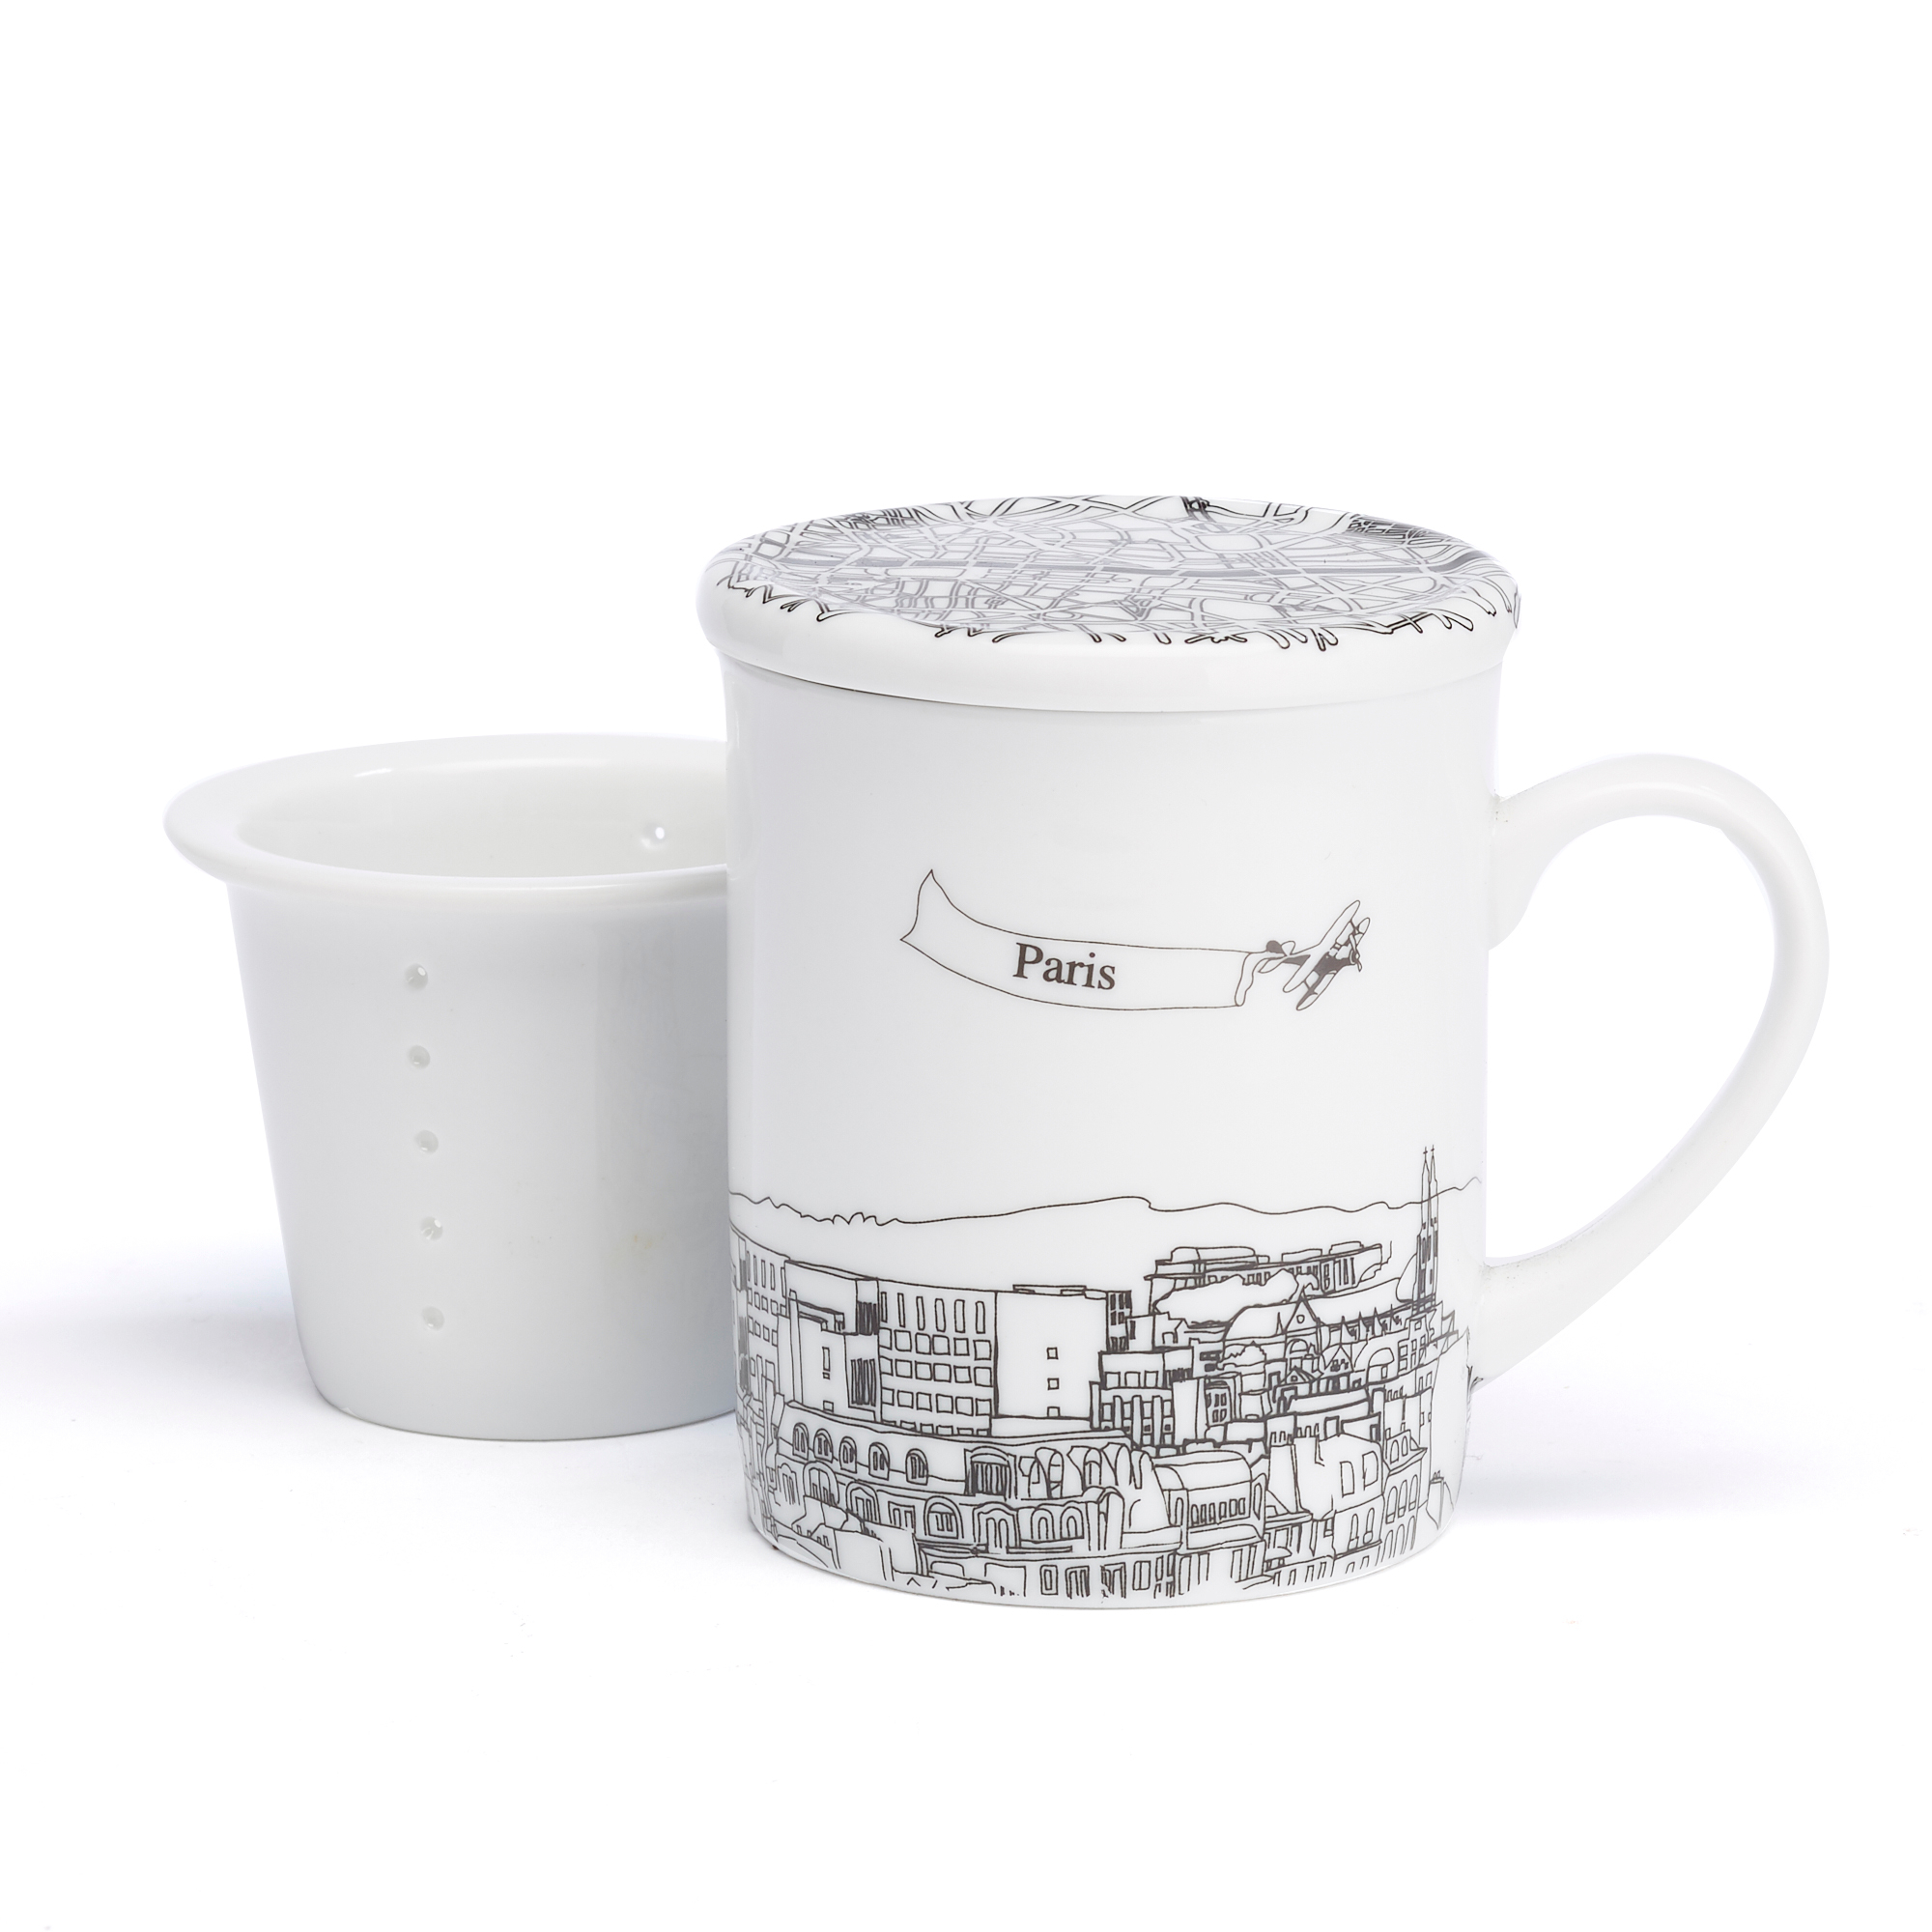 Paris City Mug